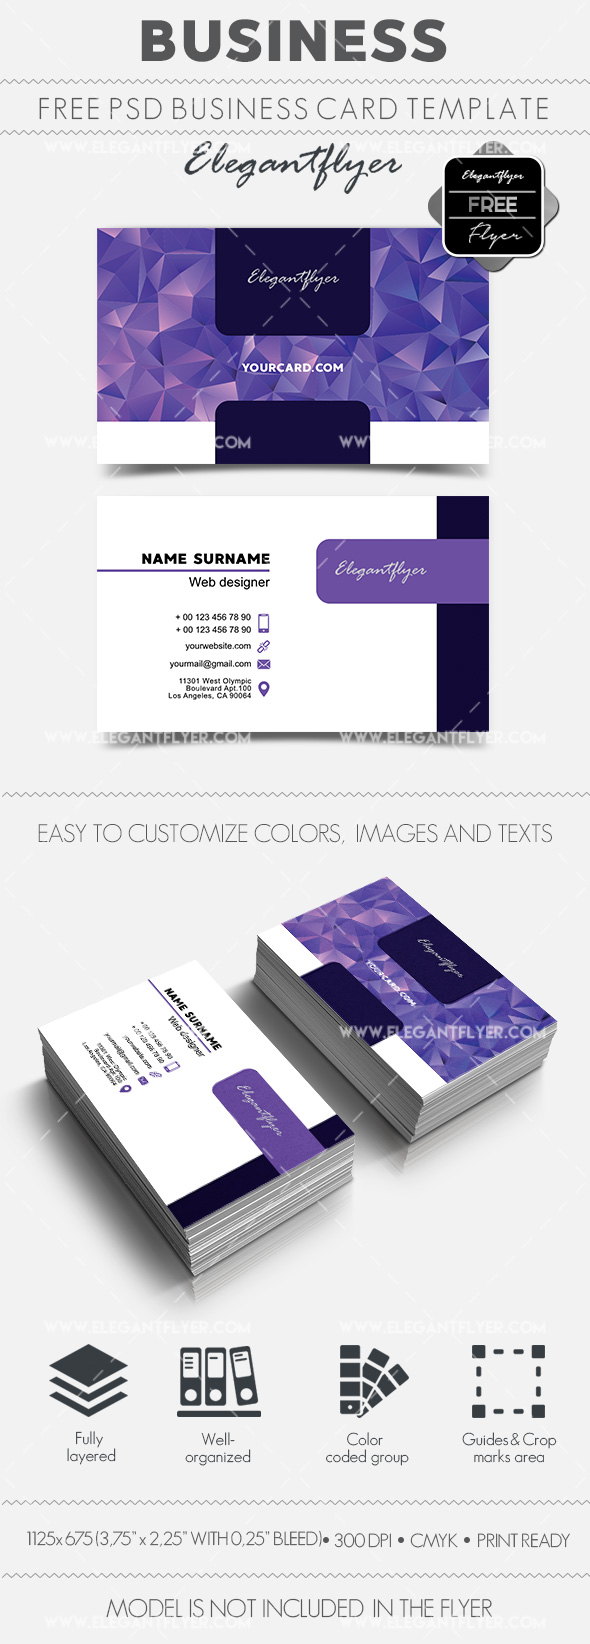 Business Card for Web Designer PSD Template